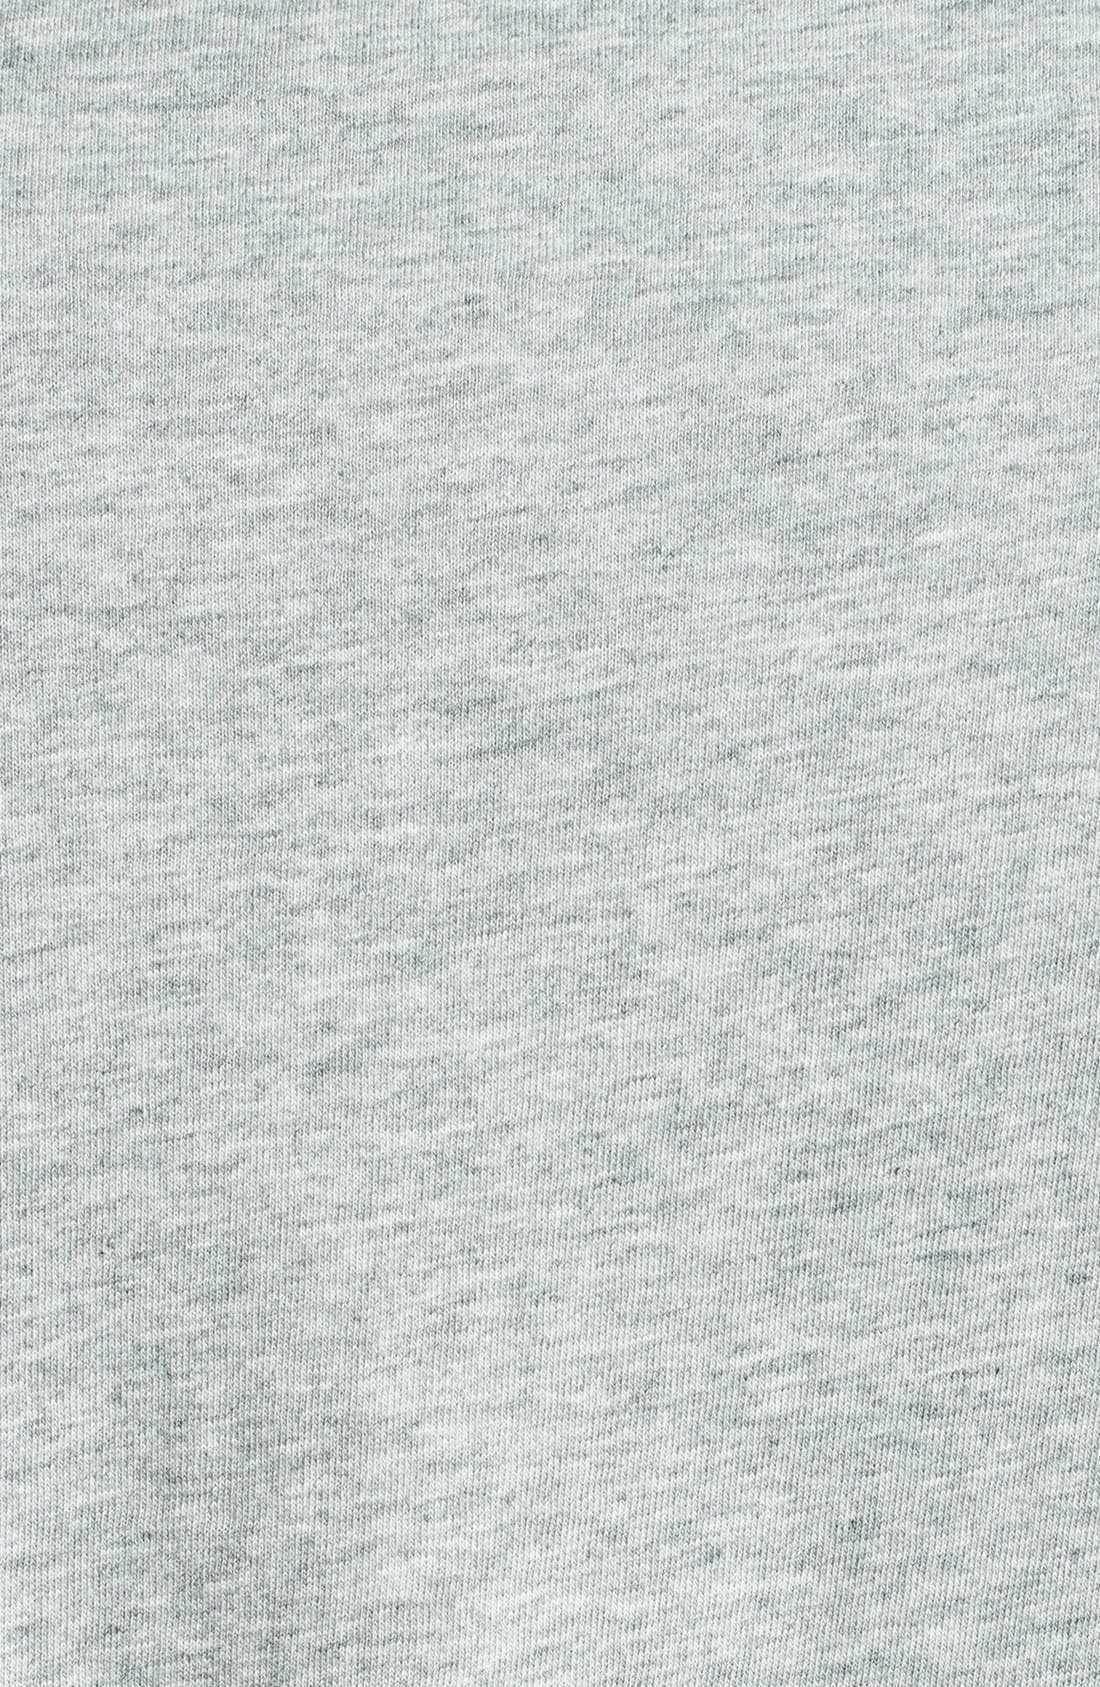 Alternate Image 3  - James Perse 'Classic' Crewneck T-Shirt